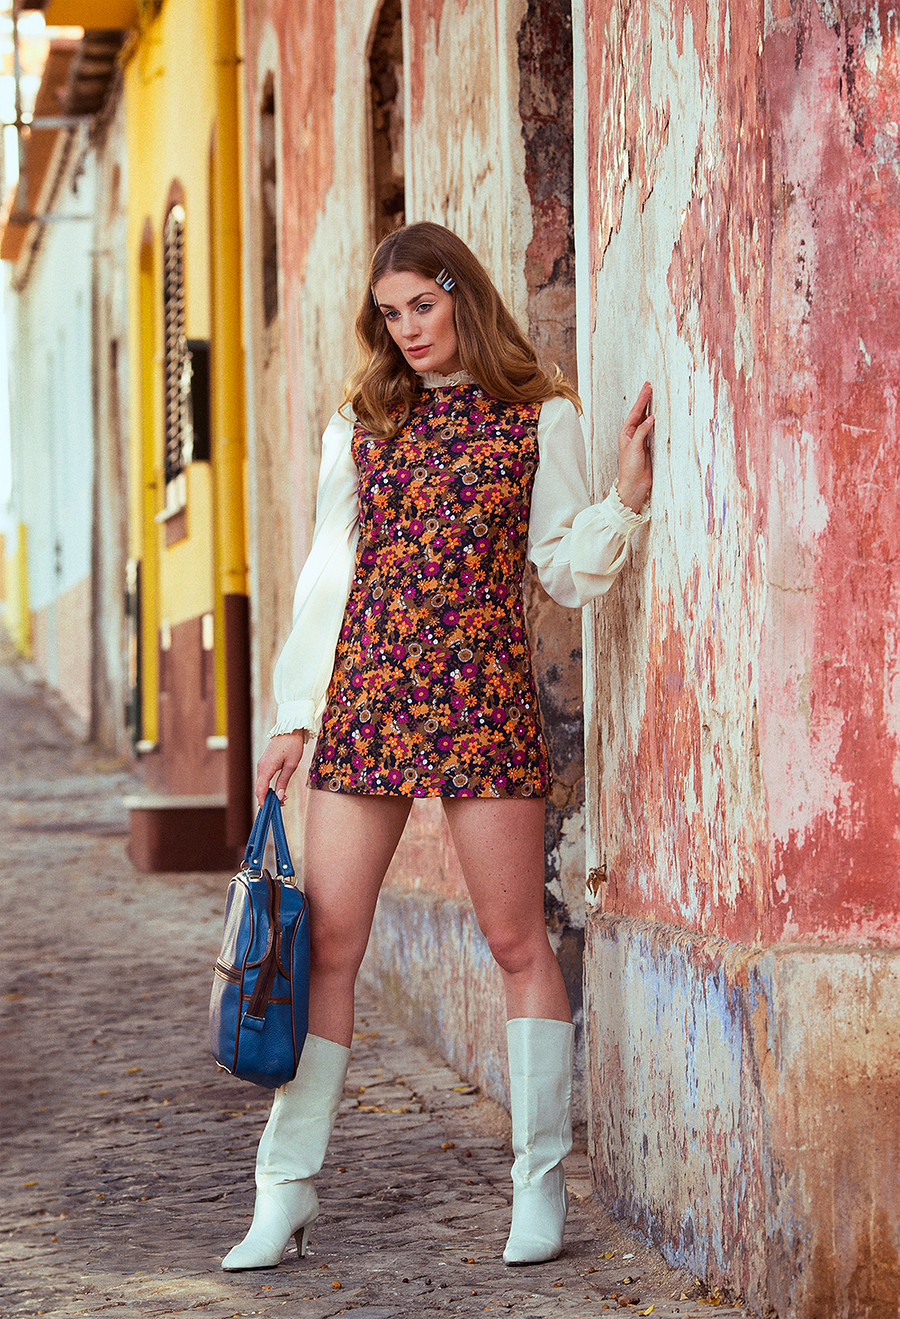 Sixties in Silves / Photography by IainT, Model Artemis Fauna, Stylist Artemisian Luxury Photographic Holidays / Uploaded 6th November 2018 @ 08:07 PM